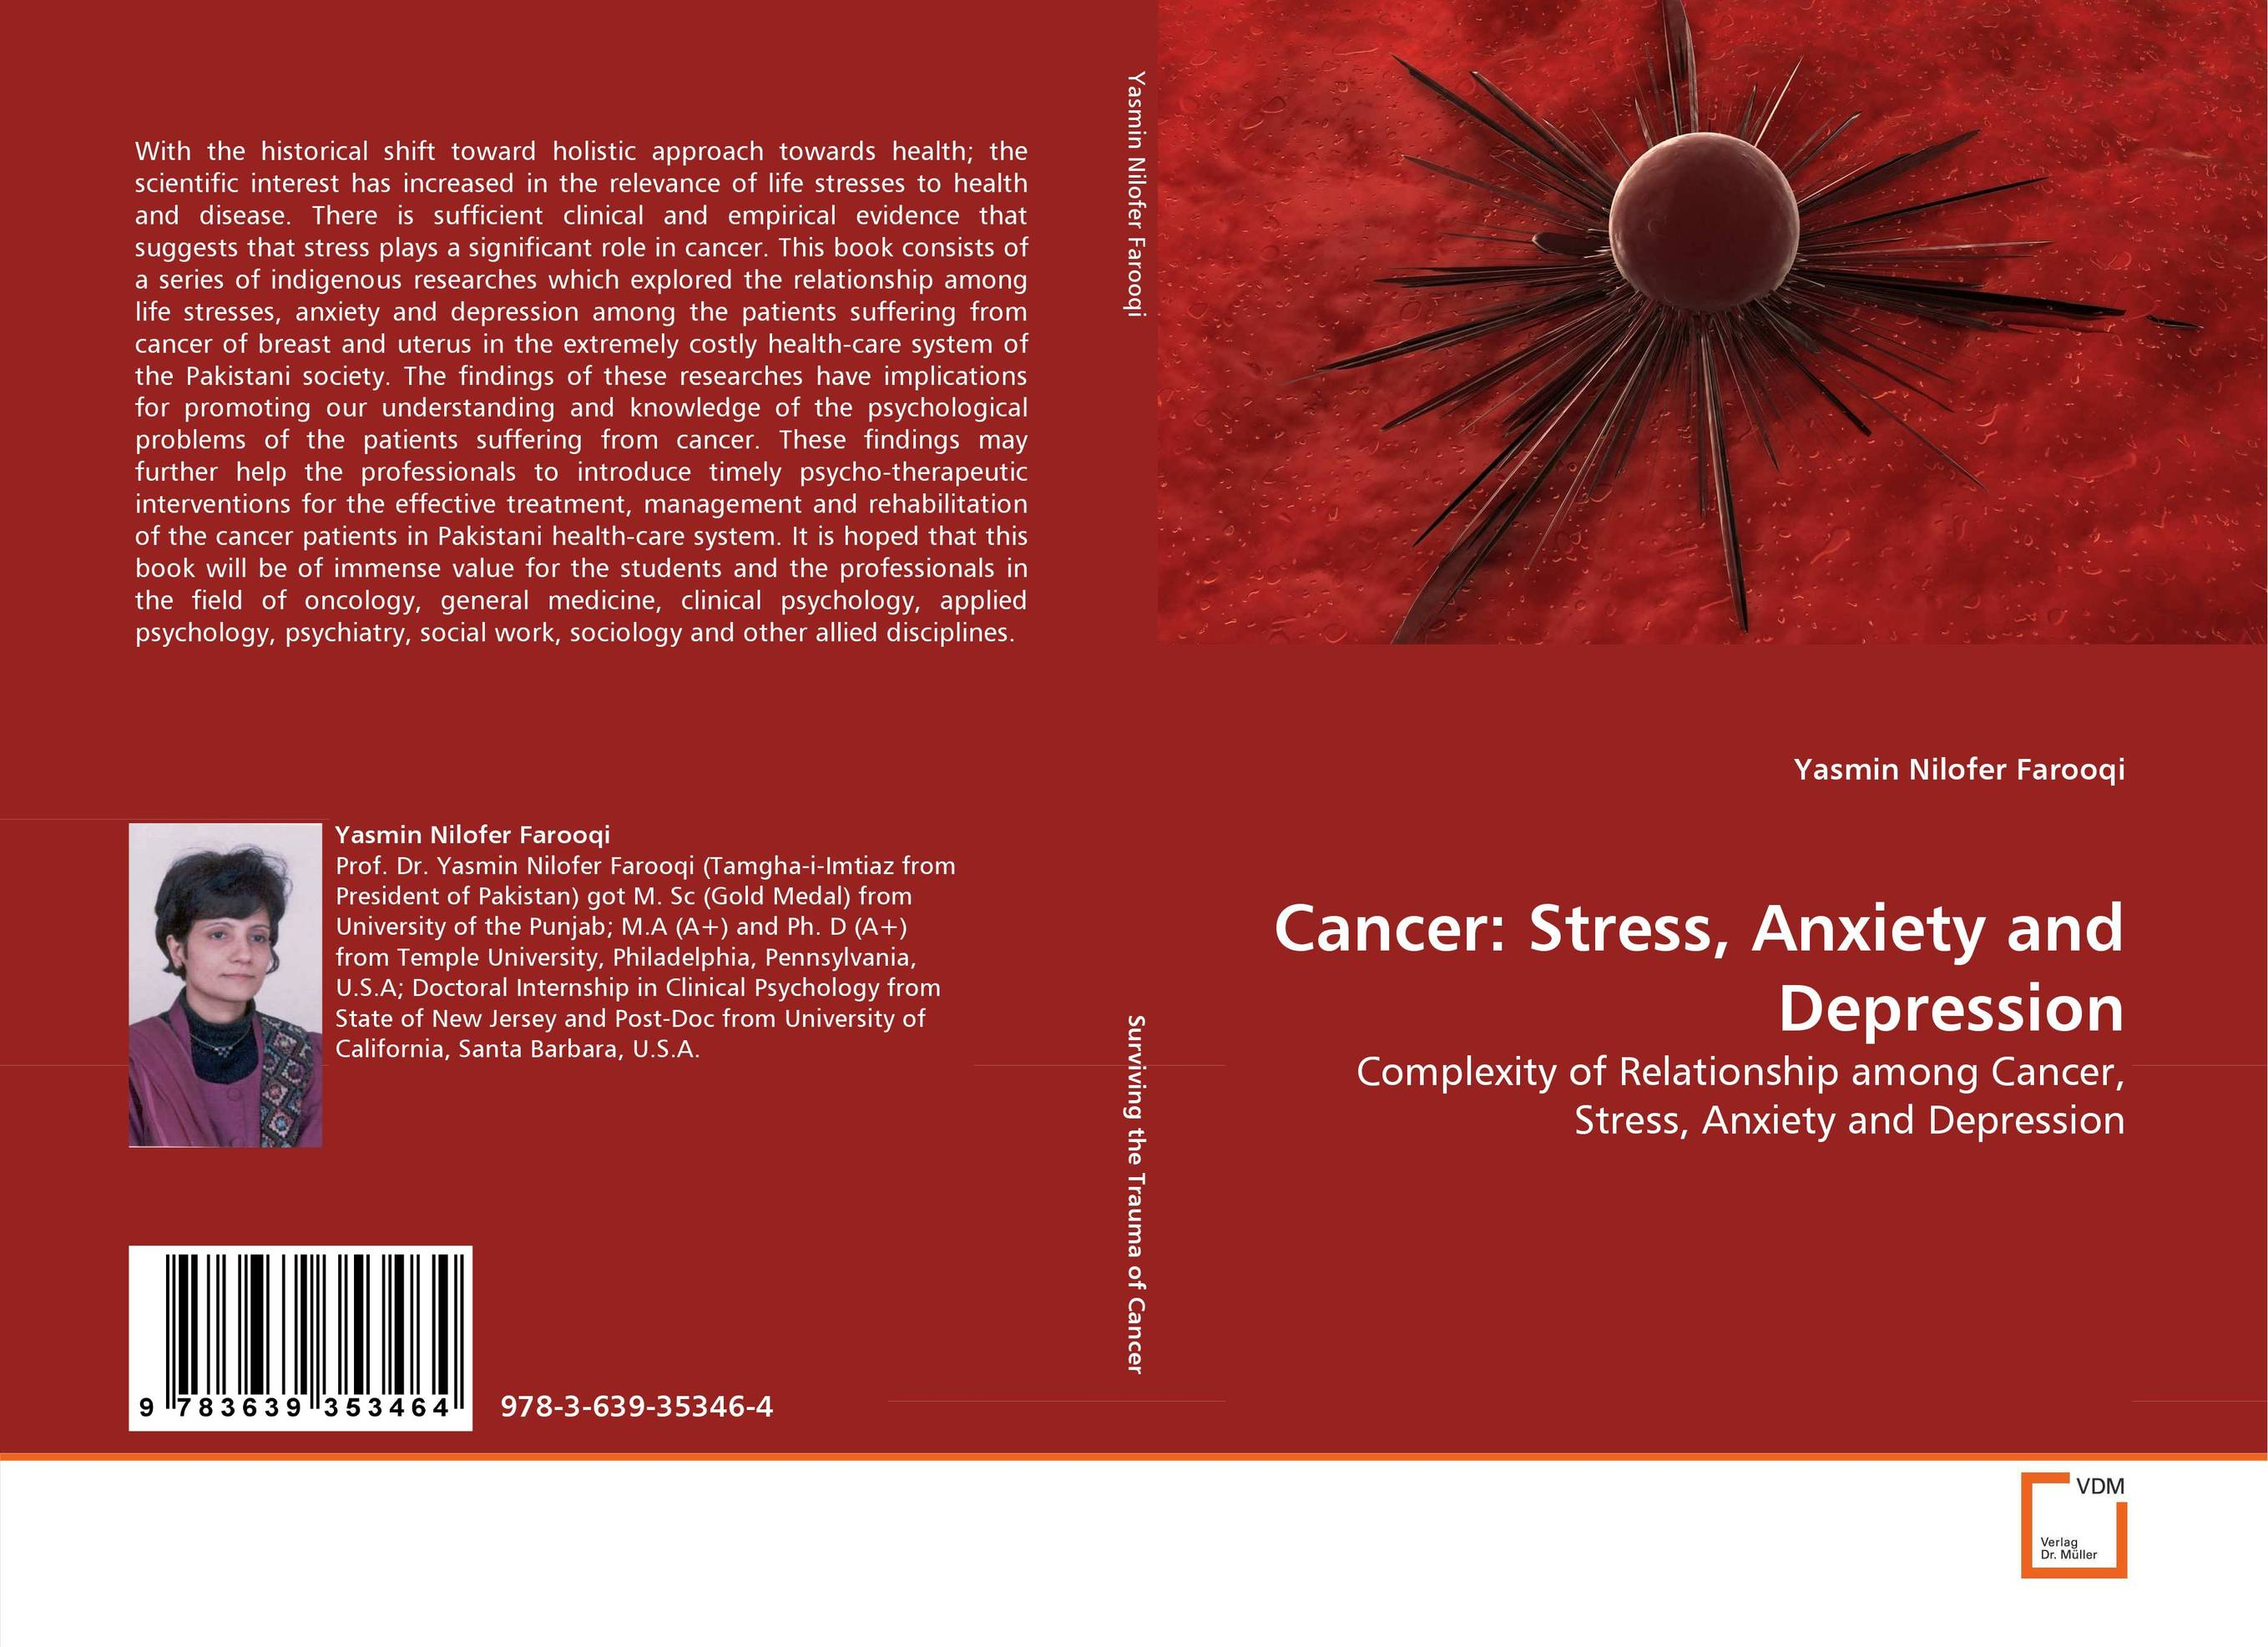 Cancer: Stress, Anxiety and Depression viruses cell transformation and cancer 5